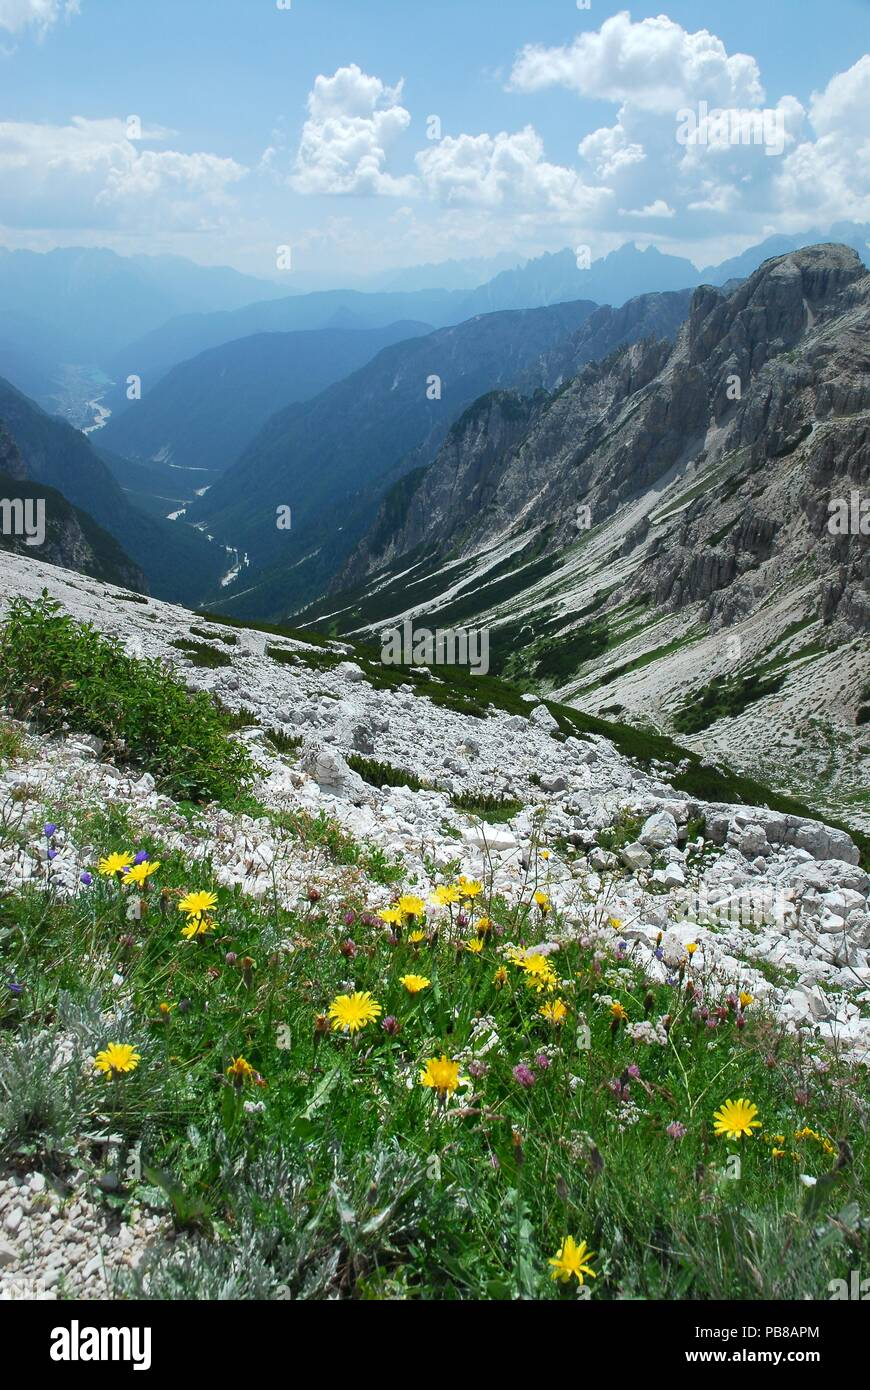 Val Marzon with Auronzo di Cadore in the background view from the path around the 3 Cime of Lavaredo, Dolomites of Sesto, Italy. Stock Photo